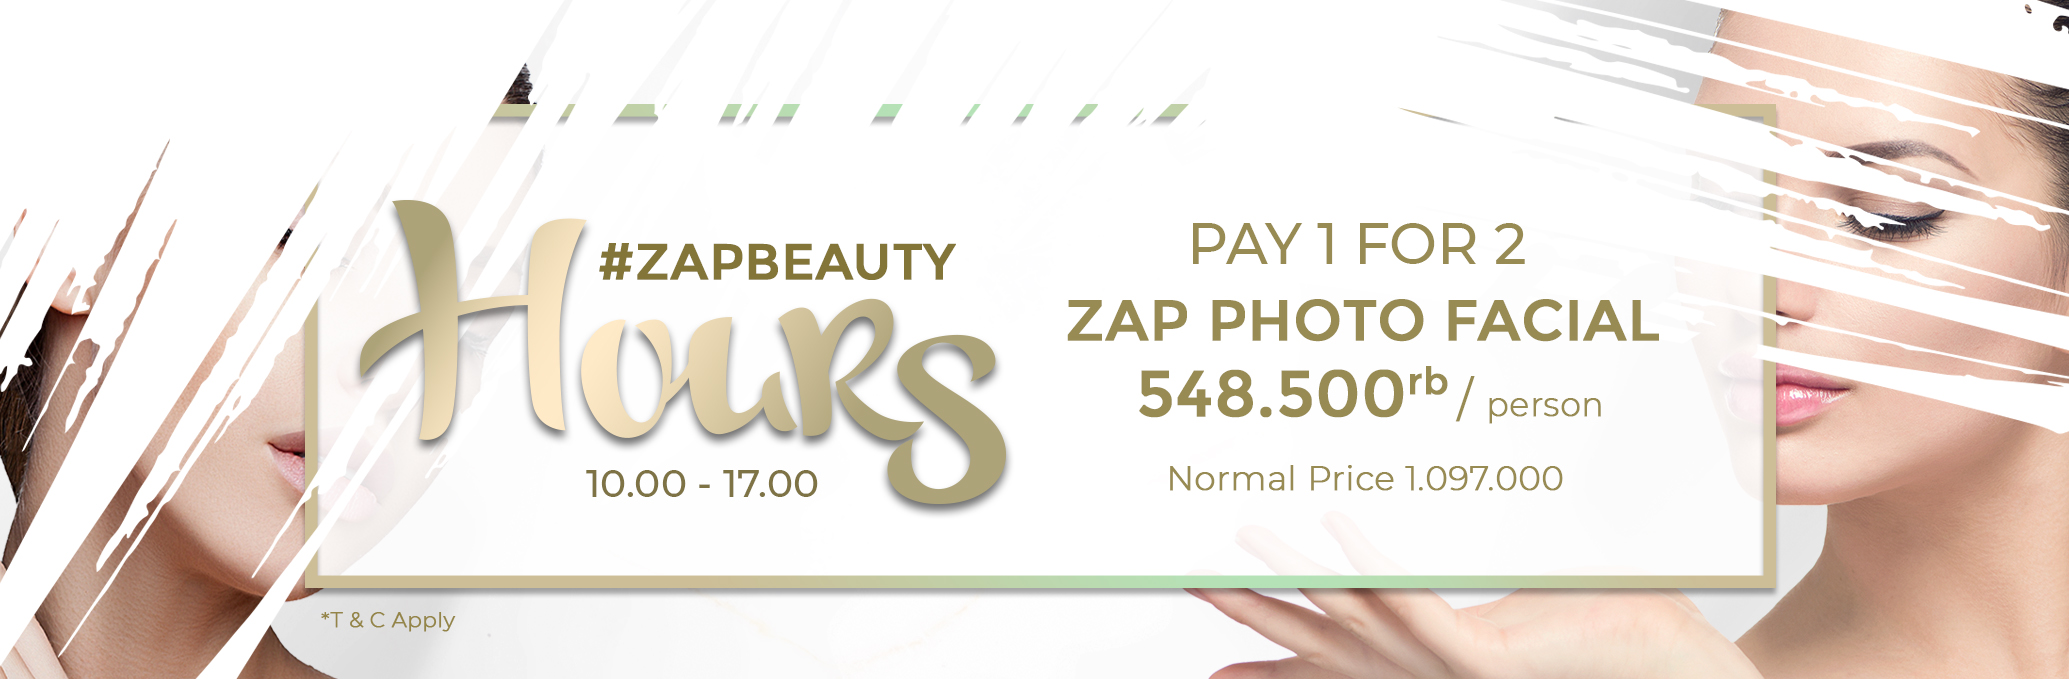 Pay 1 For 2 Photo Facial 2019